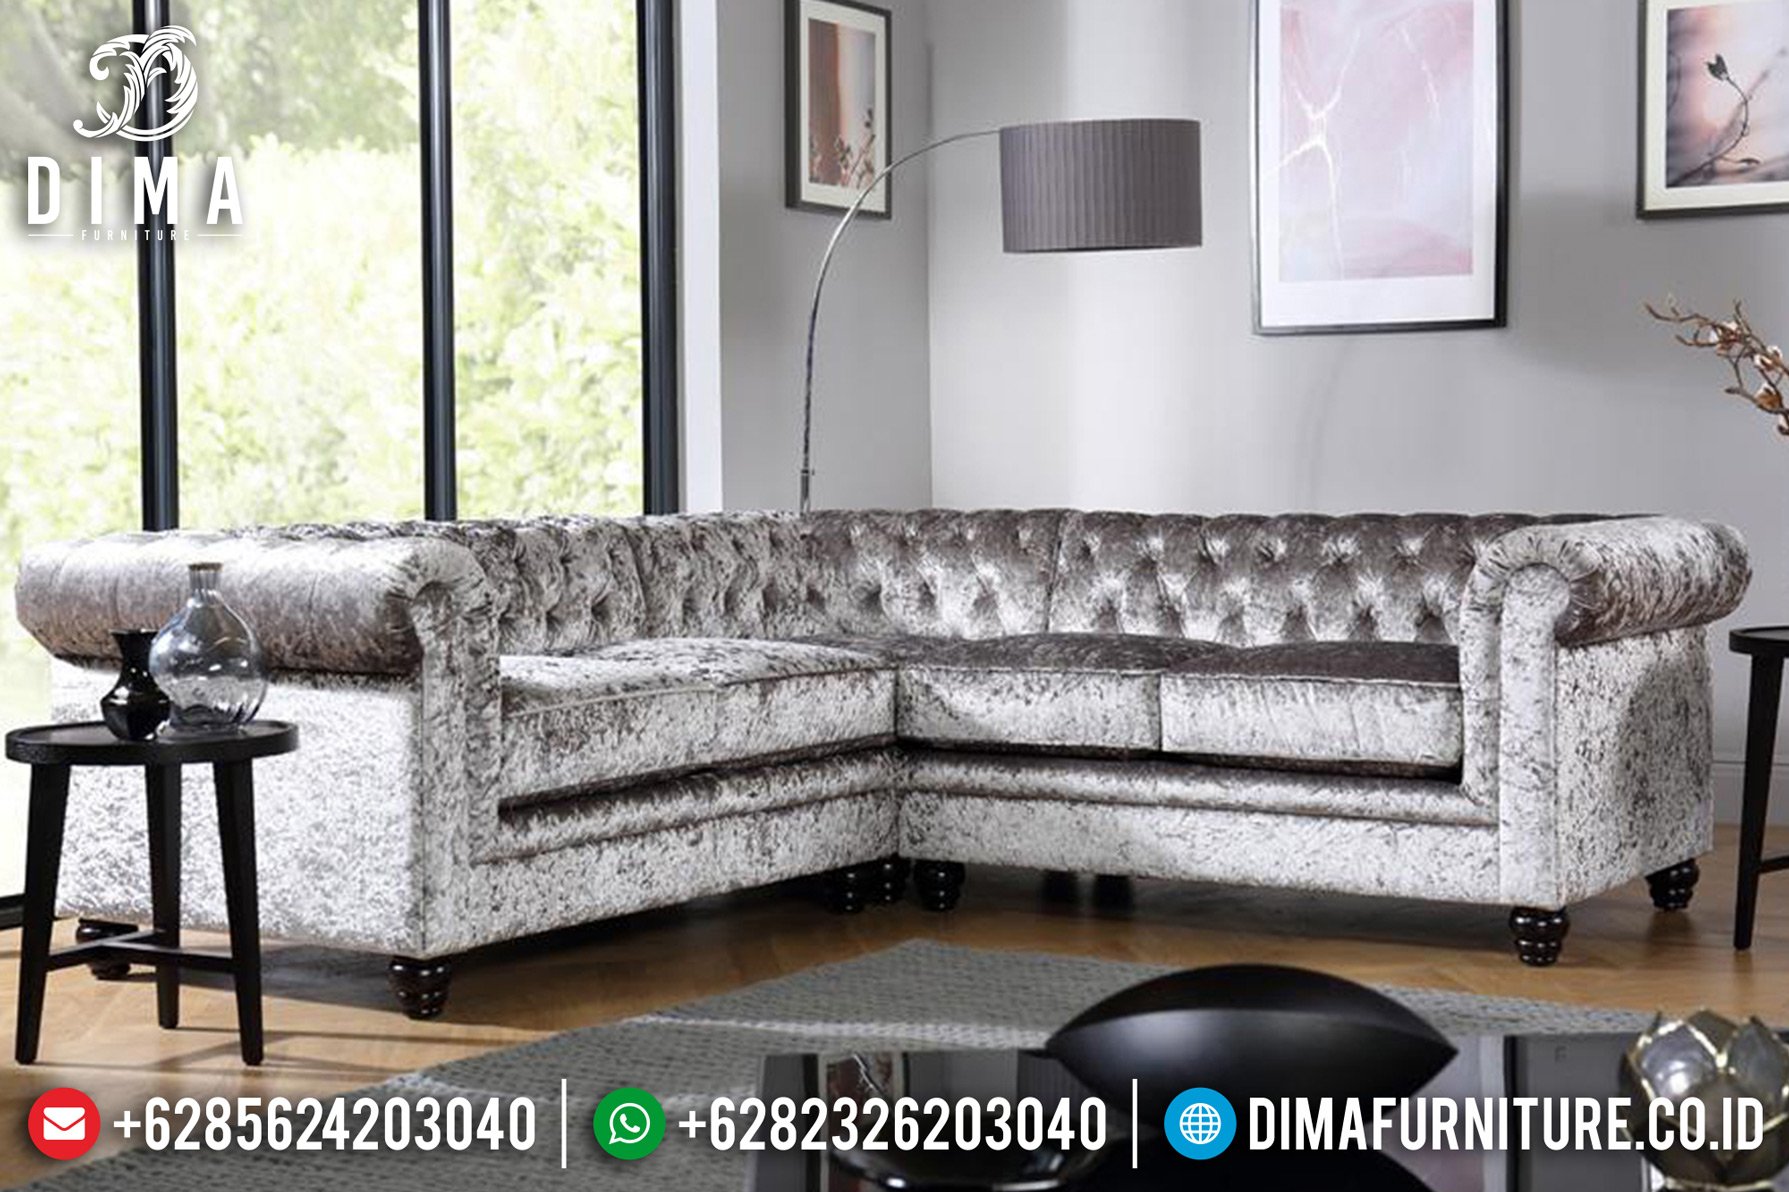 New Wonder Sale Sofa Tamu Jepara Minimalis Mewah Bludru Chesterfield DF-1206